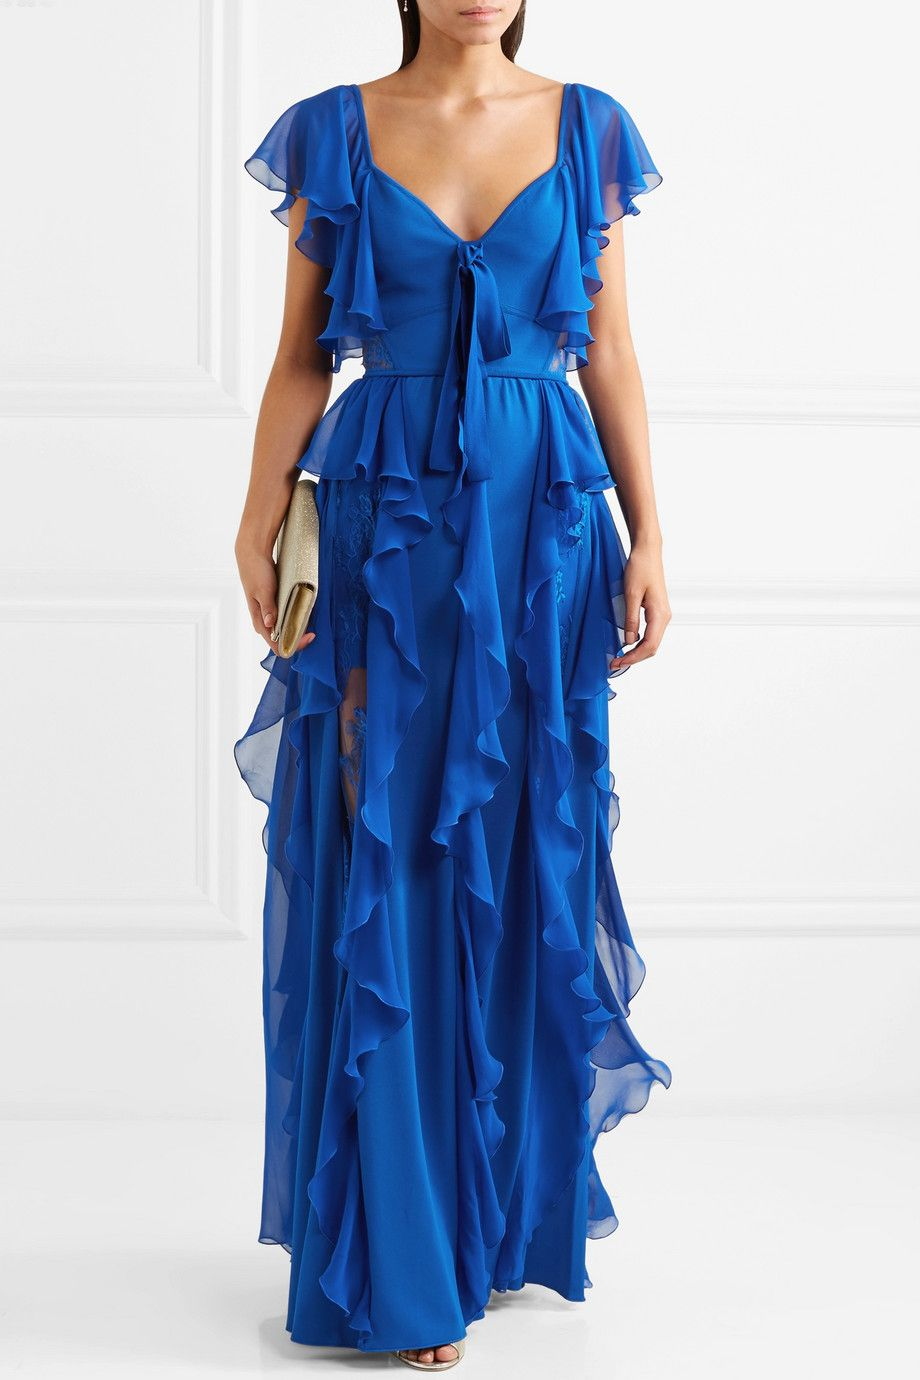 Elie saab ruffled georgette and lace gown netaportercom